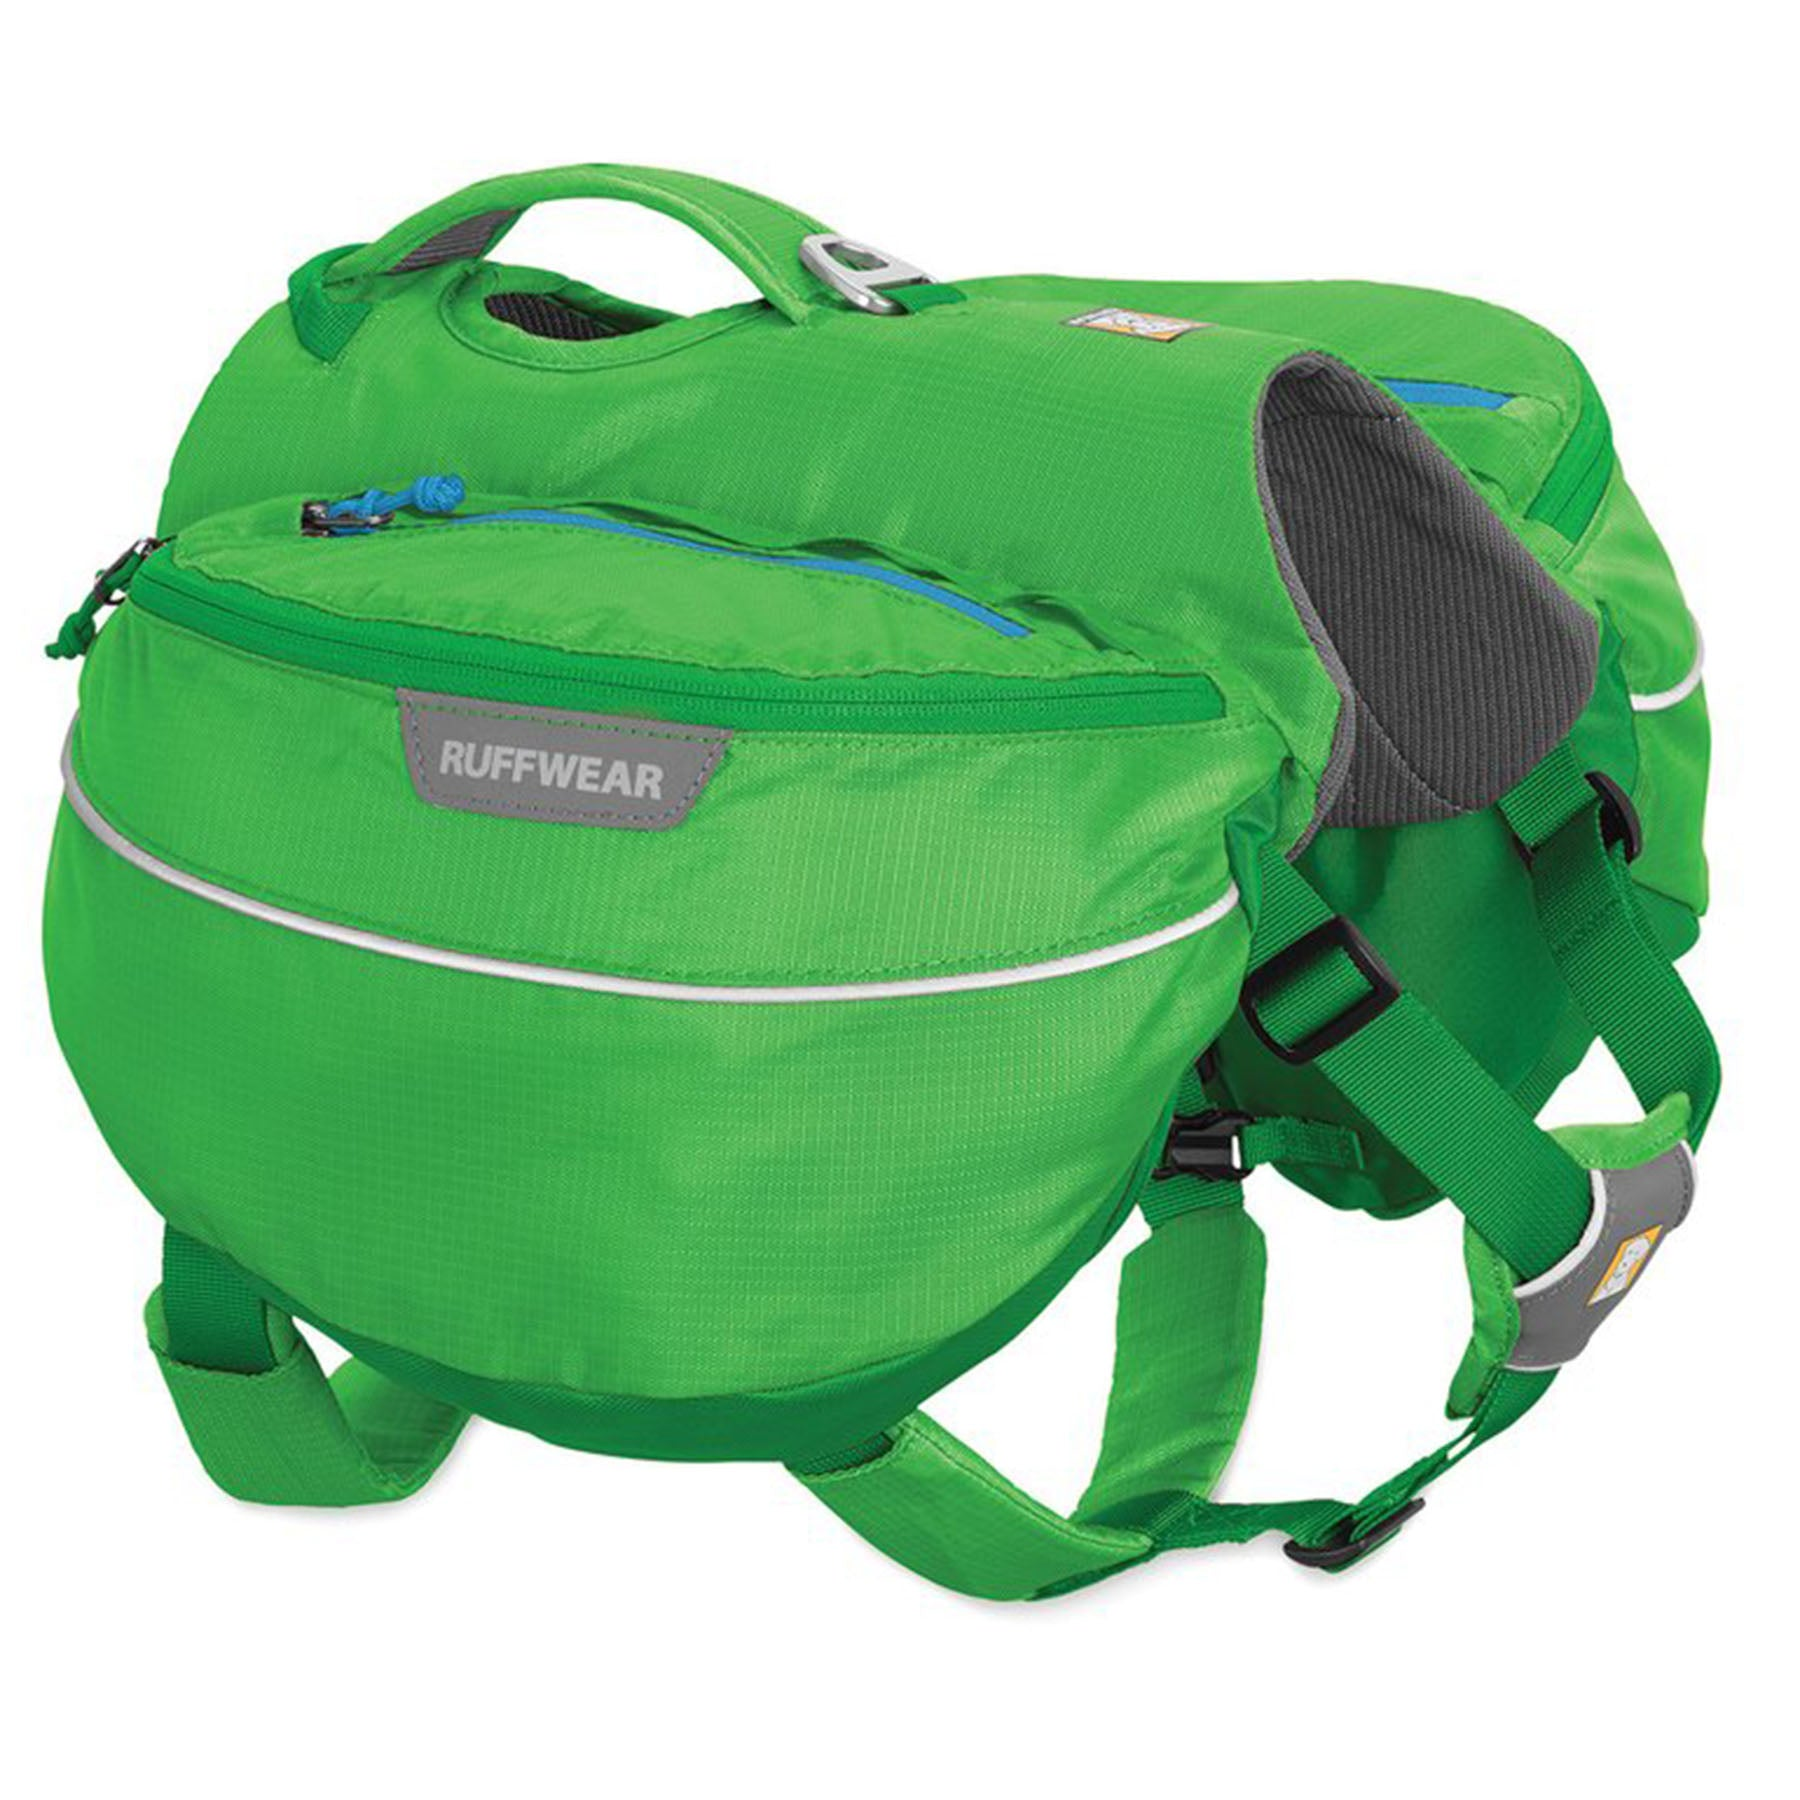 a photo of the Ruff wear approach dog pack in green